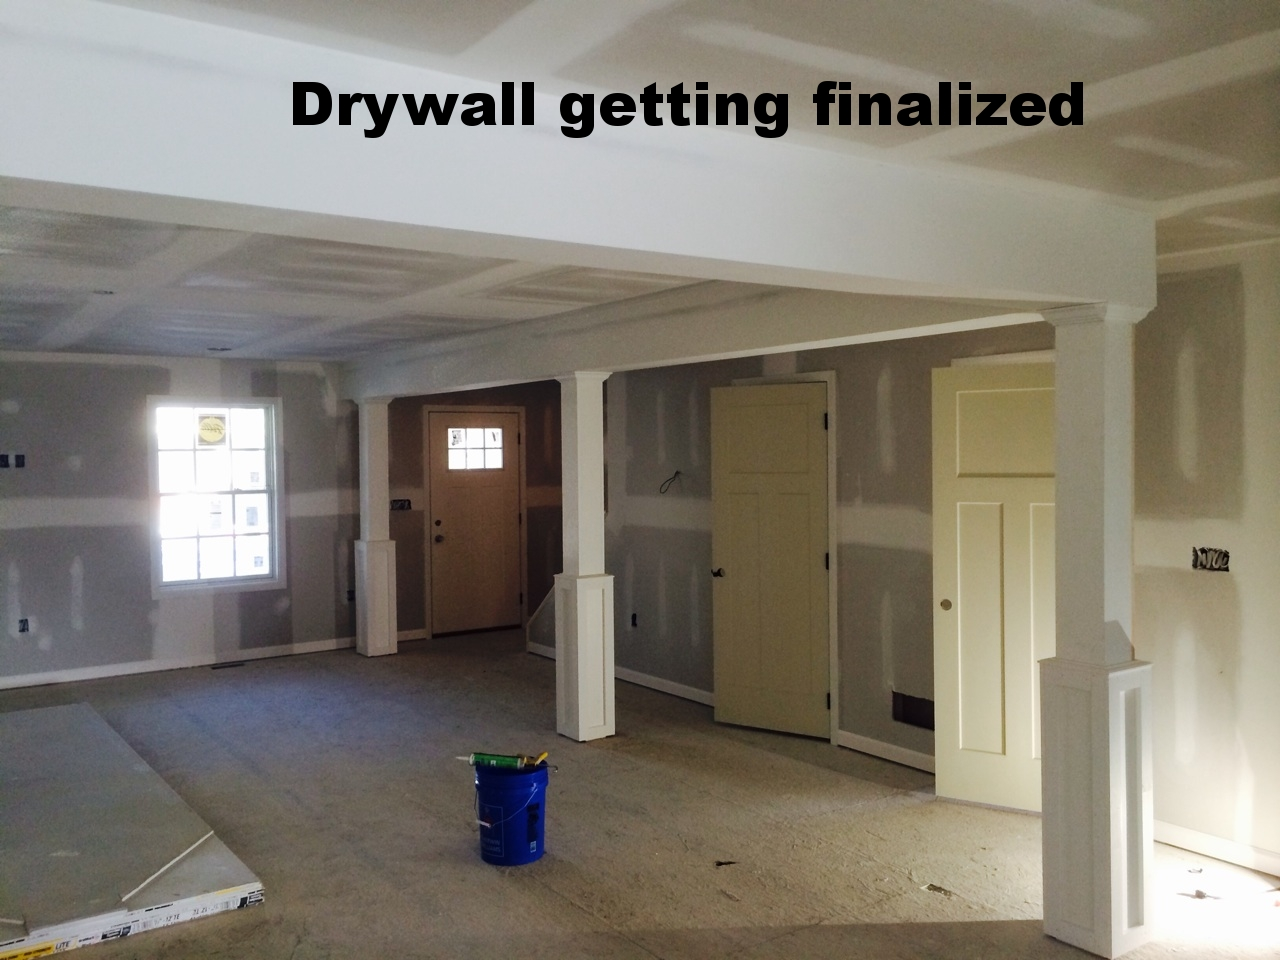 18 - drywall getting done.jpg